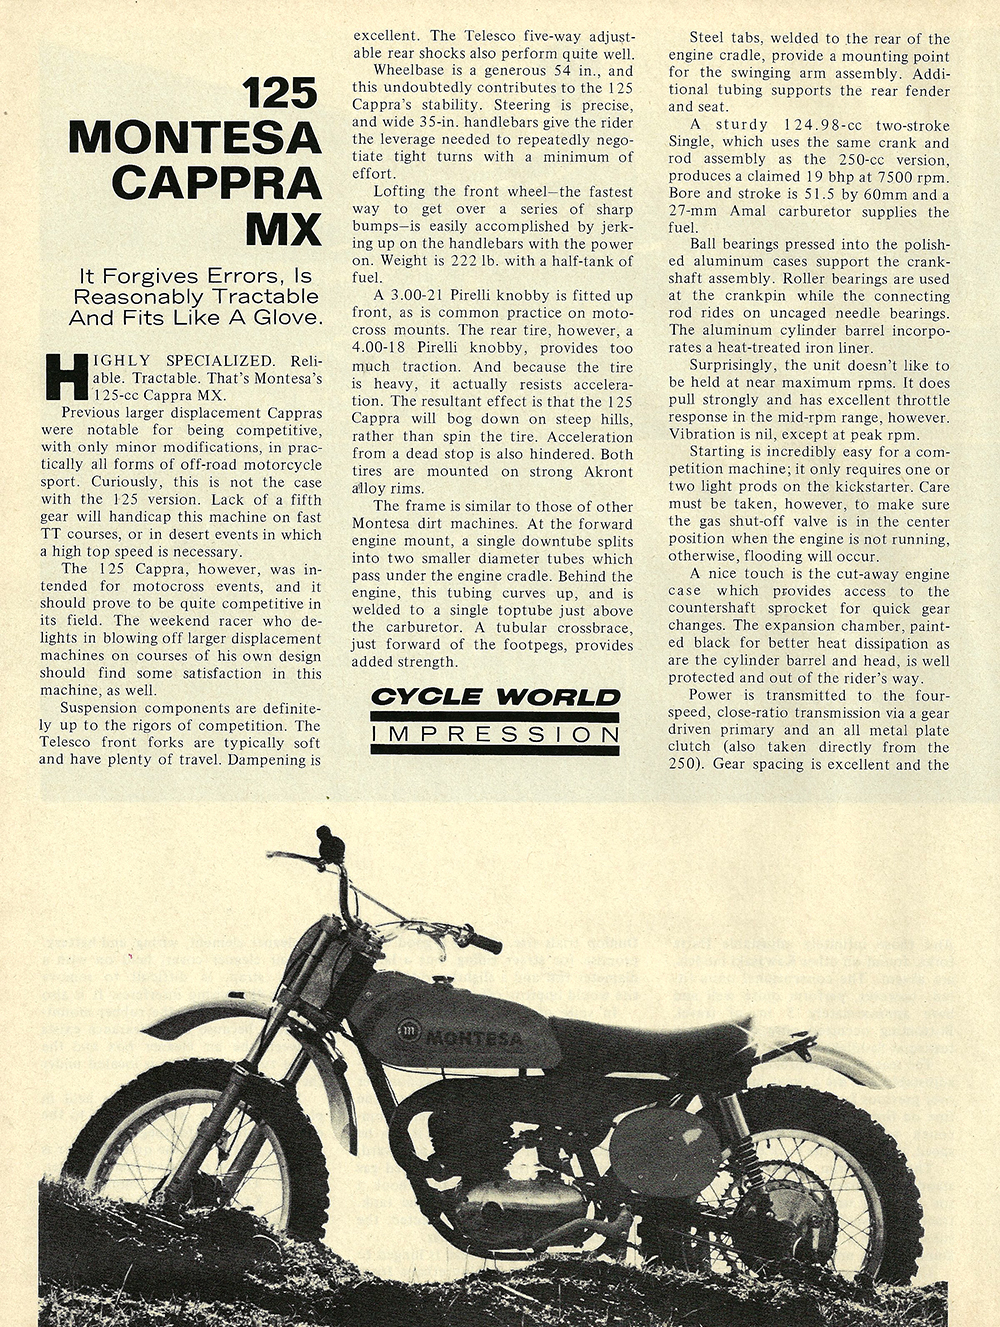 1971 Montesa Cappra 125 MX impression 01.jpg